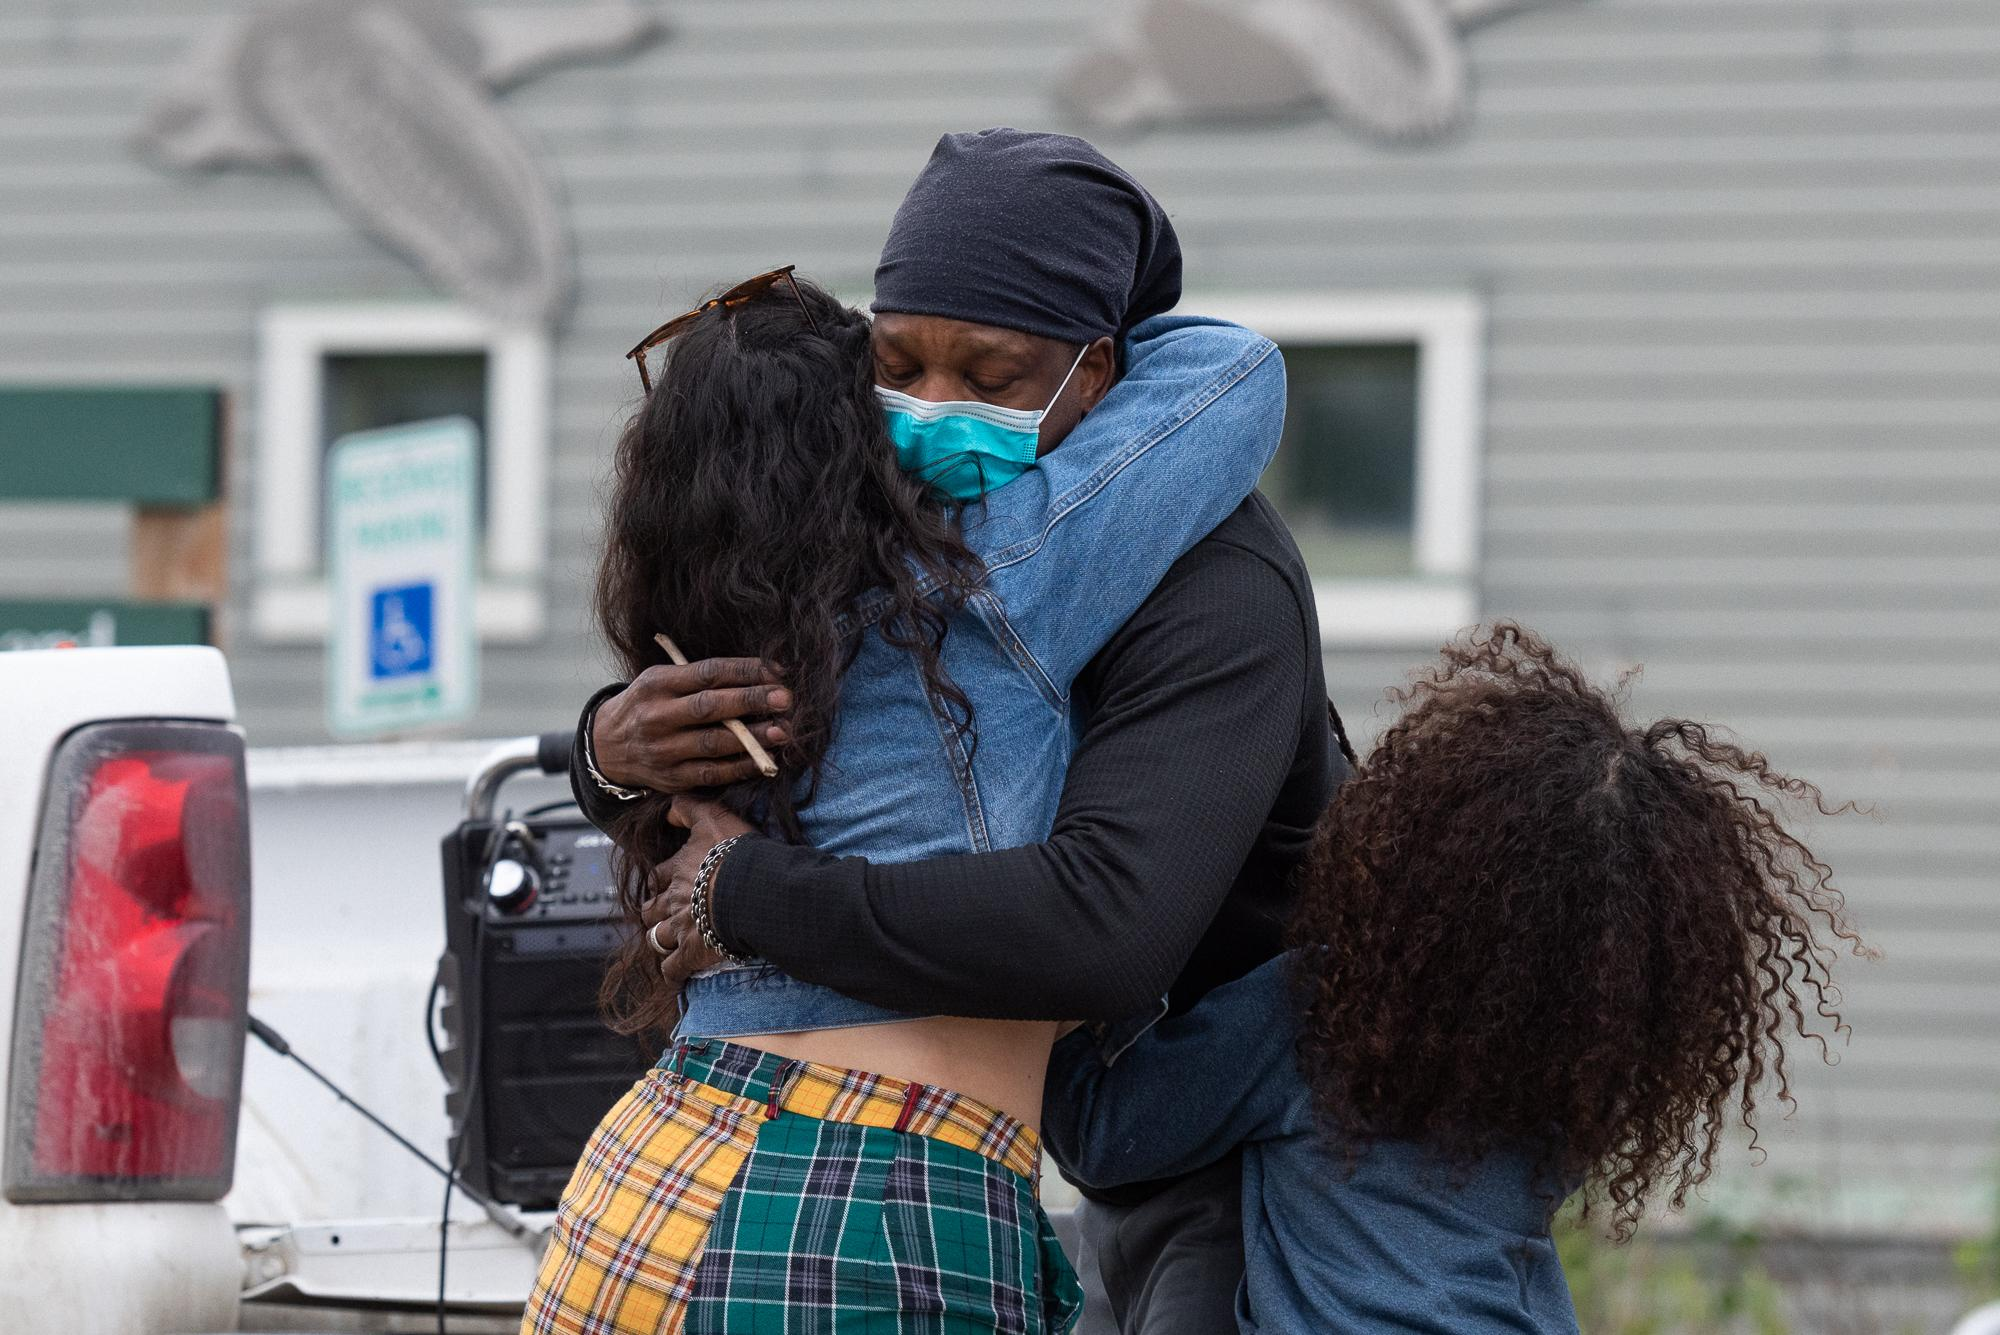 Lonnie Holley Sr. is embraced by Alize Mccabe and his neice after giving an emotional speech at the Black Lives Matter protest on June 5, 2020 in Bethel, Alaska.